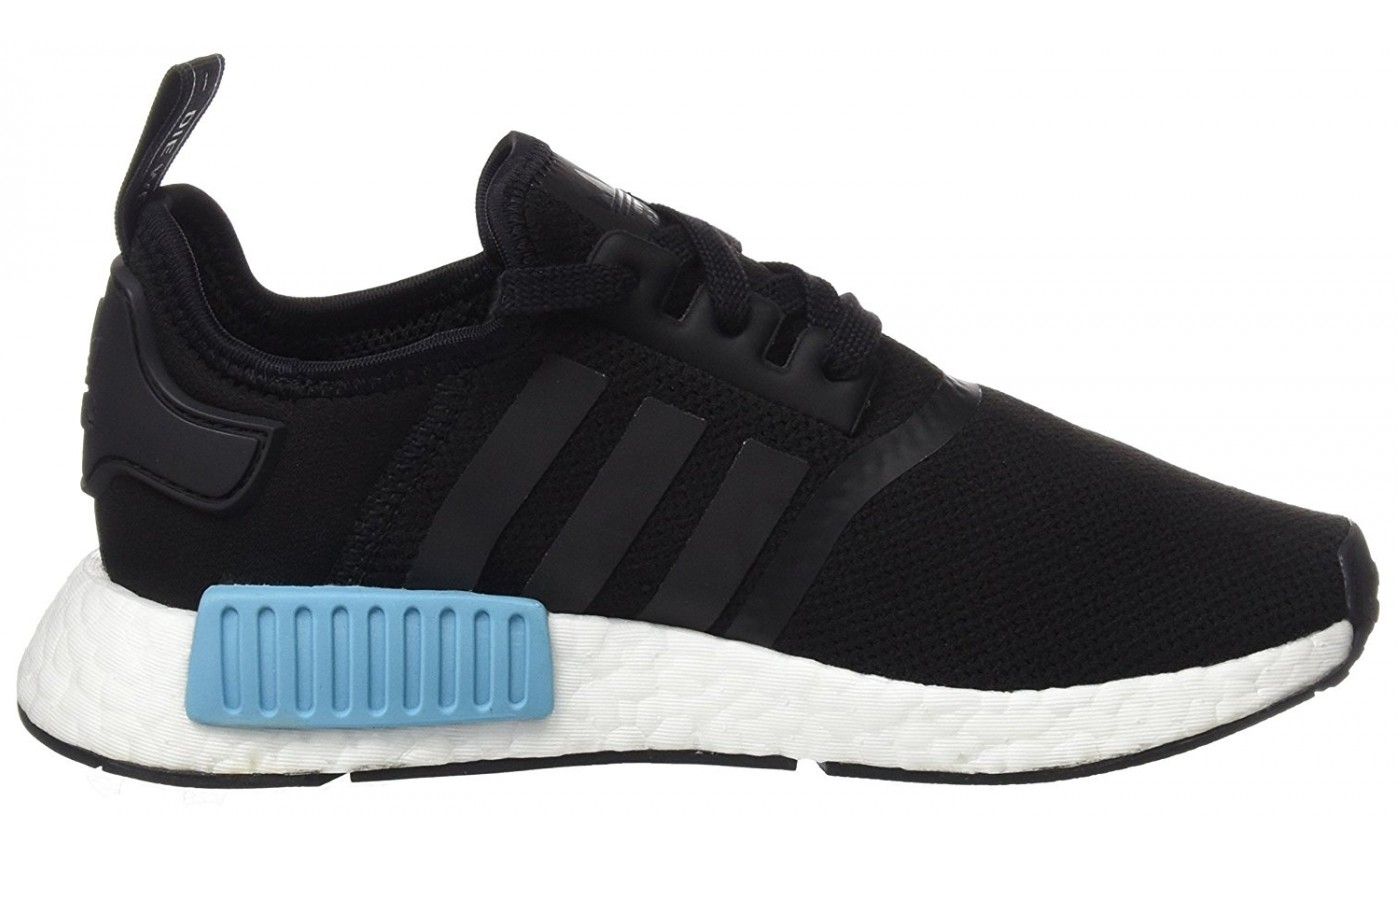 178d863c1f002 Adidas NMD R1 Reviewed   Tested for Performance in 2019